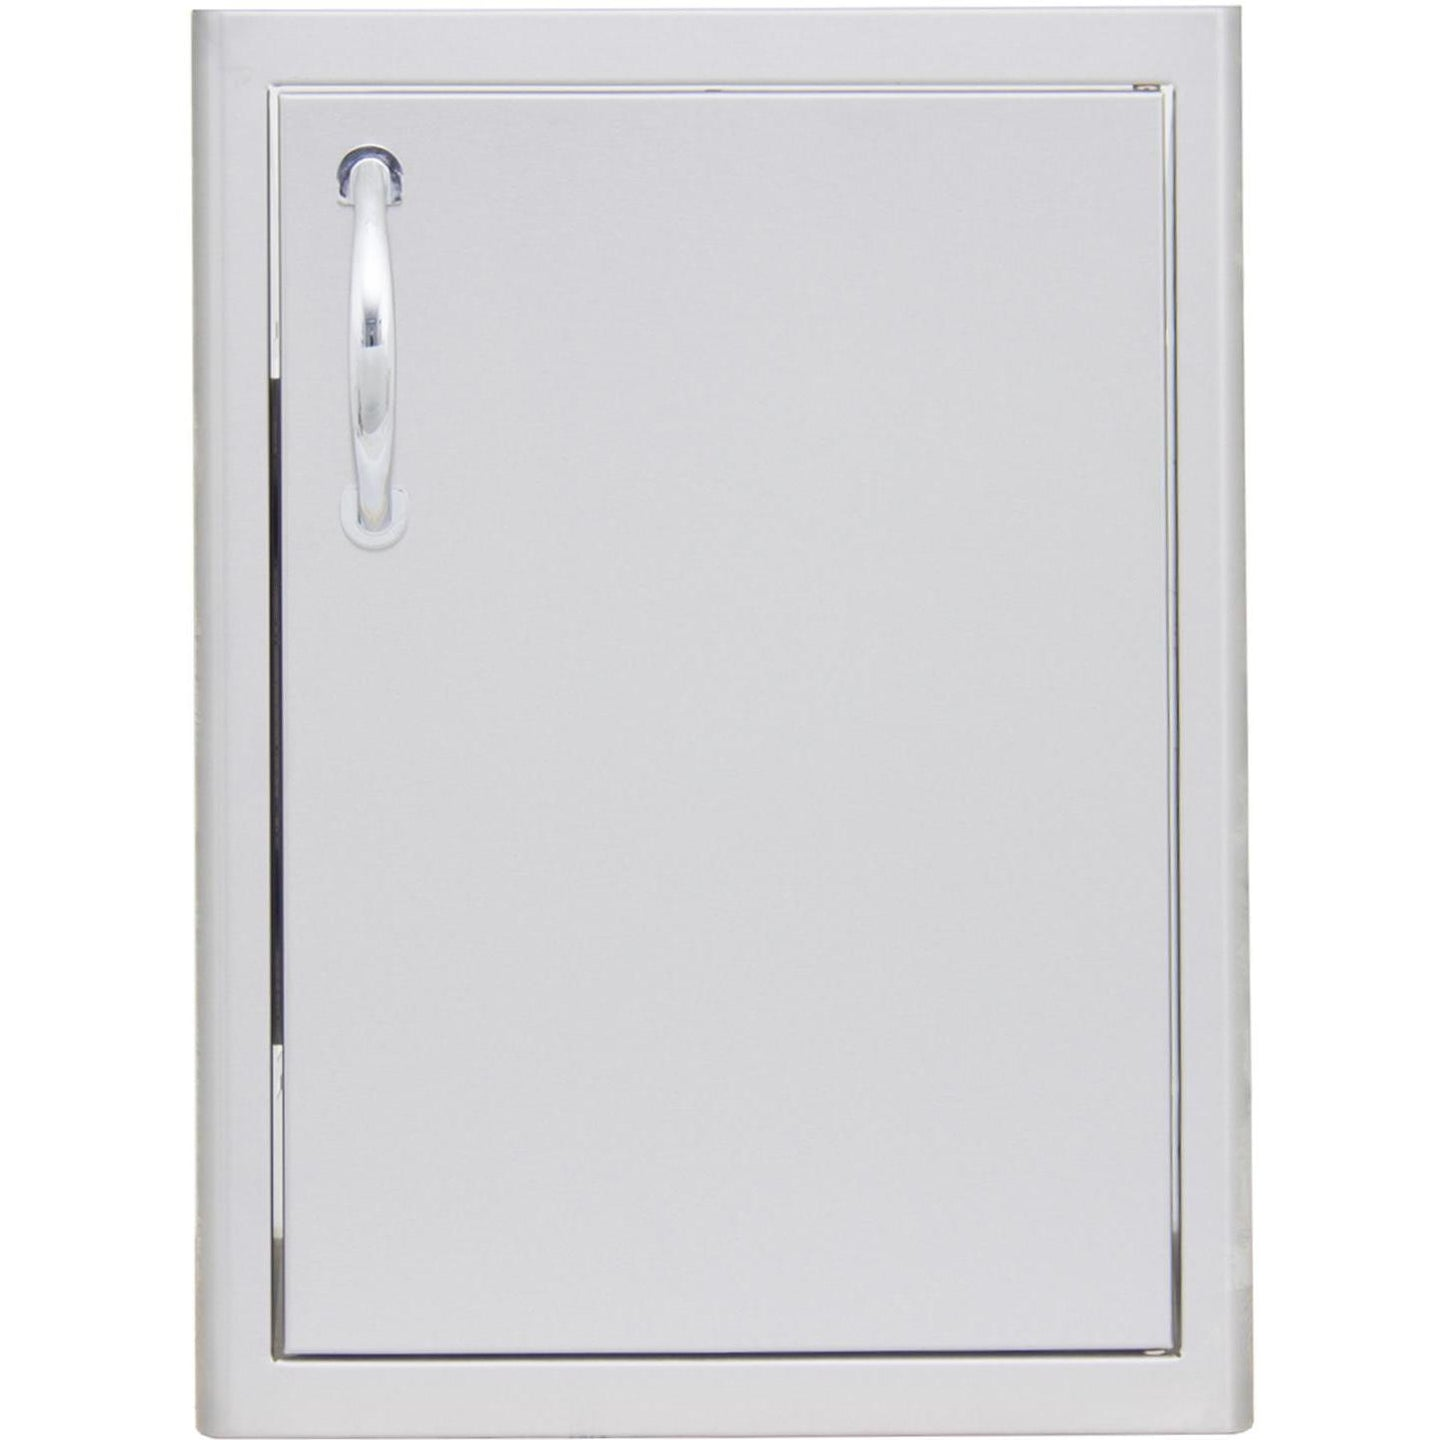 Blaze 18-Inch Right Hinged Single Access Door - Vertical BLZ-SV-1420-R